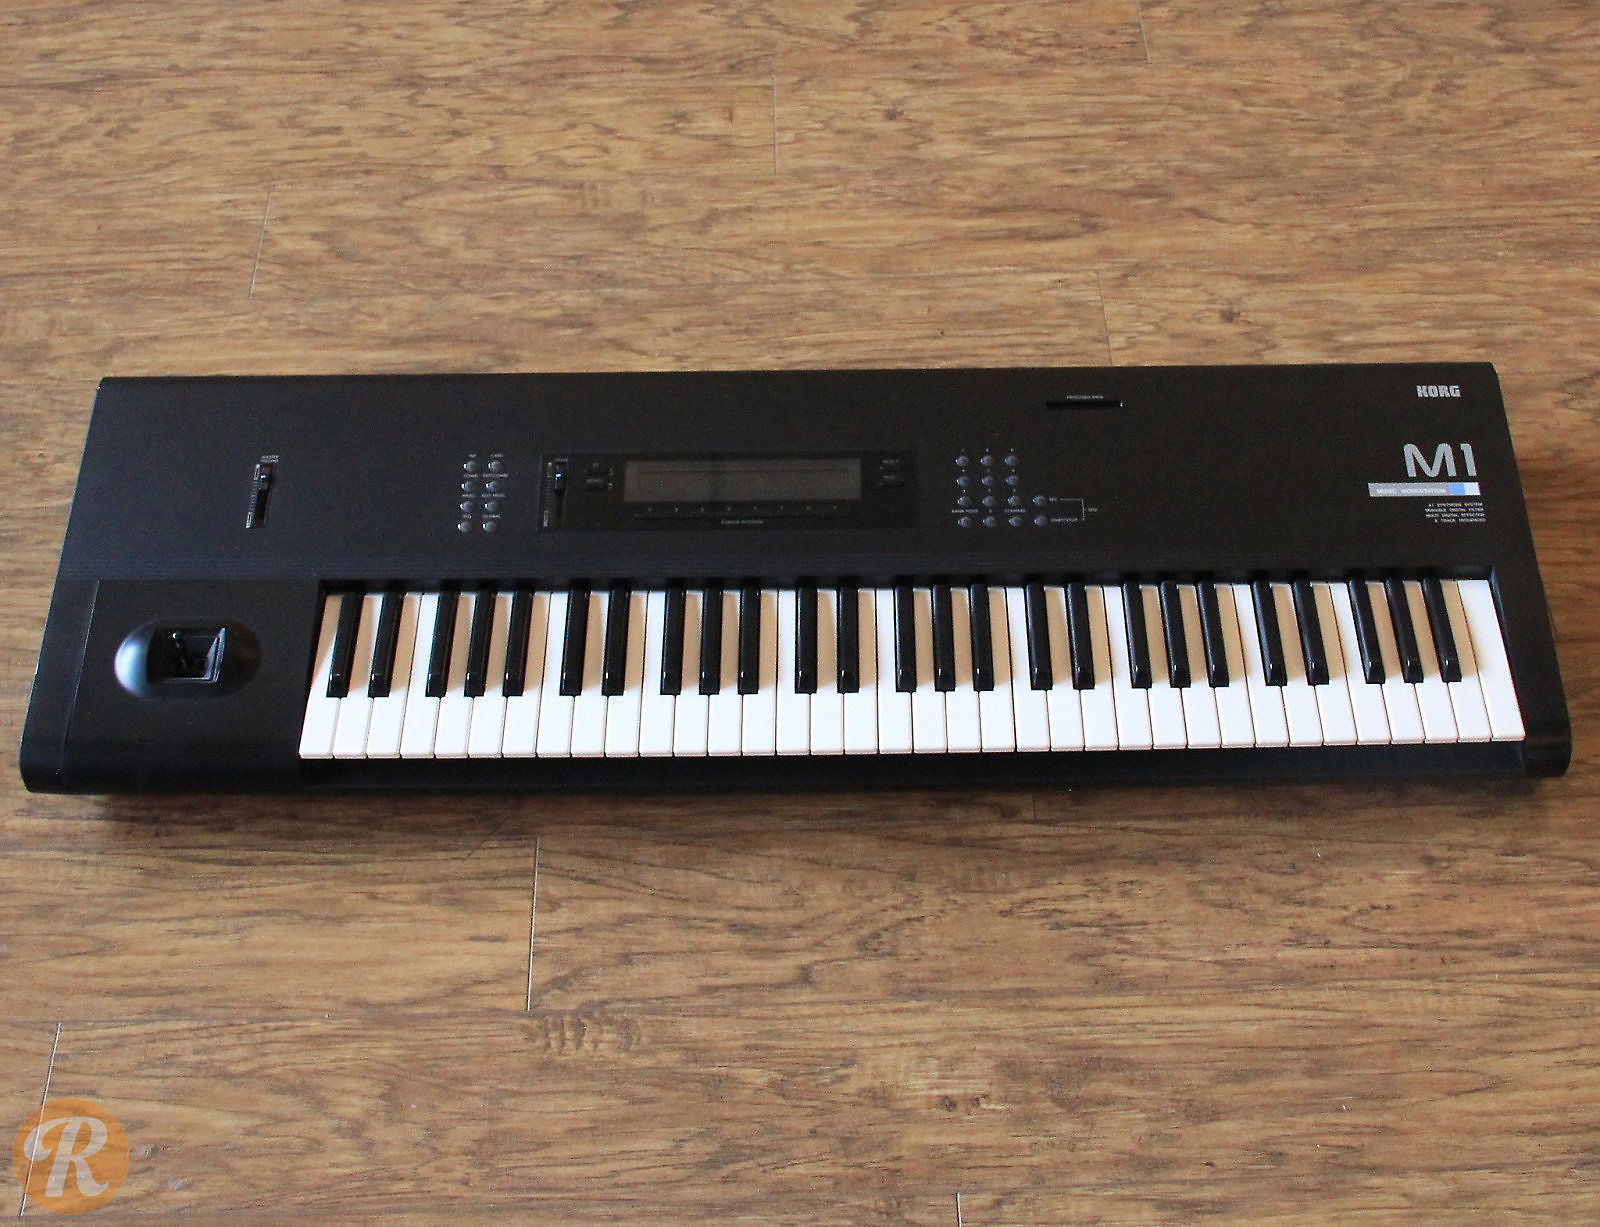 Korg M1 61-Key Synth Music Workstation | Reverb